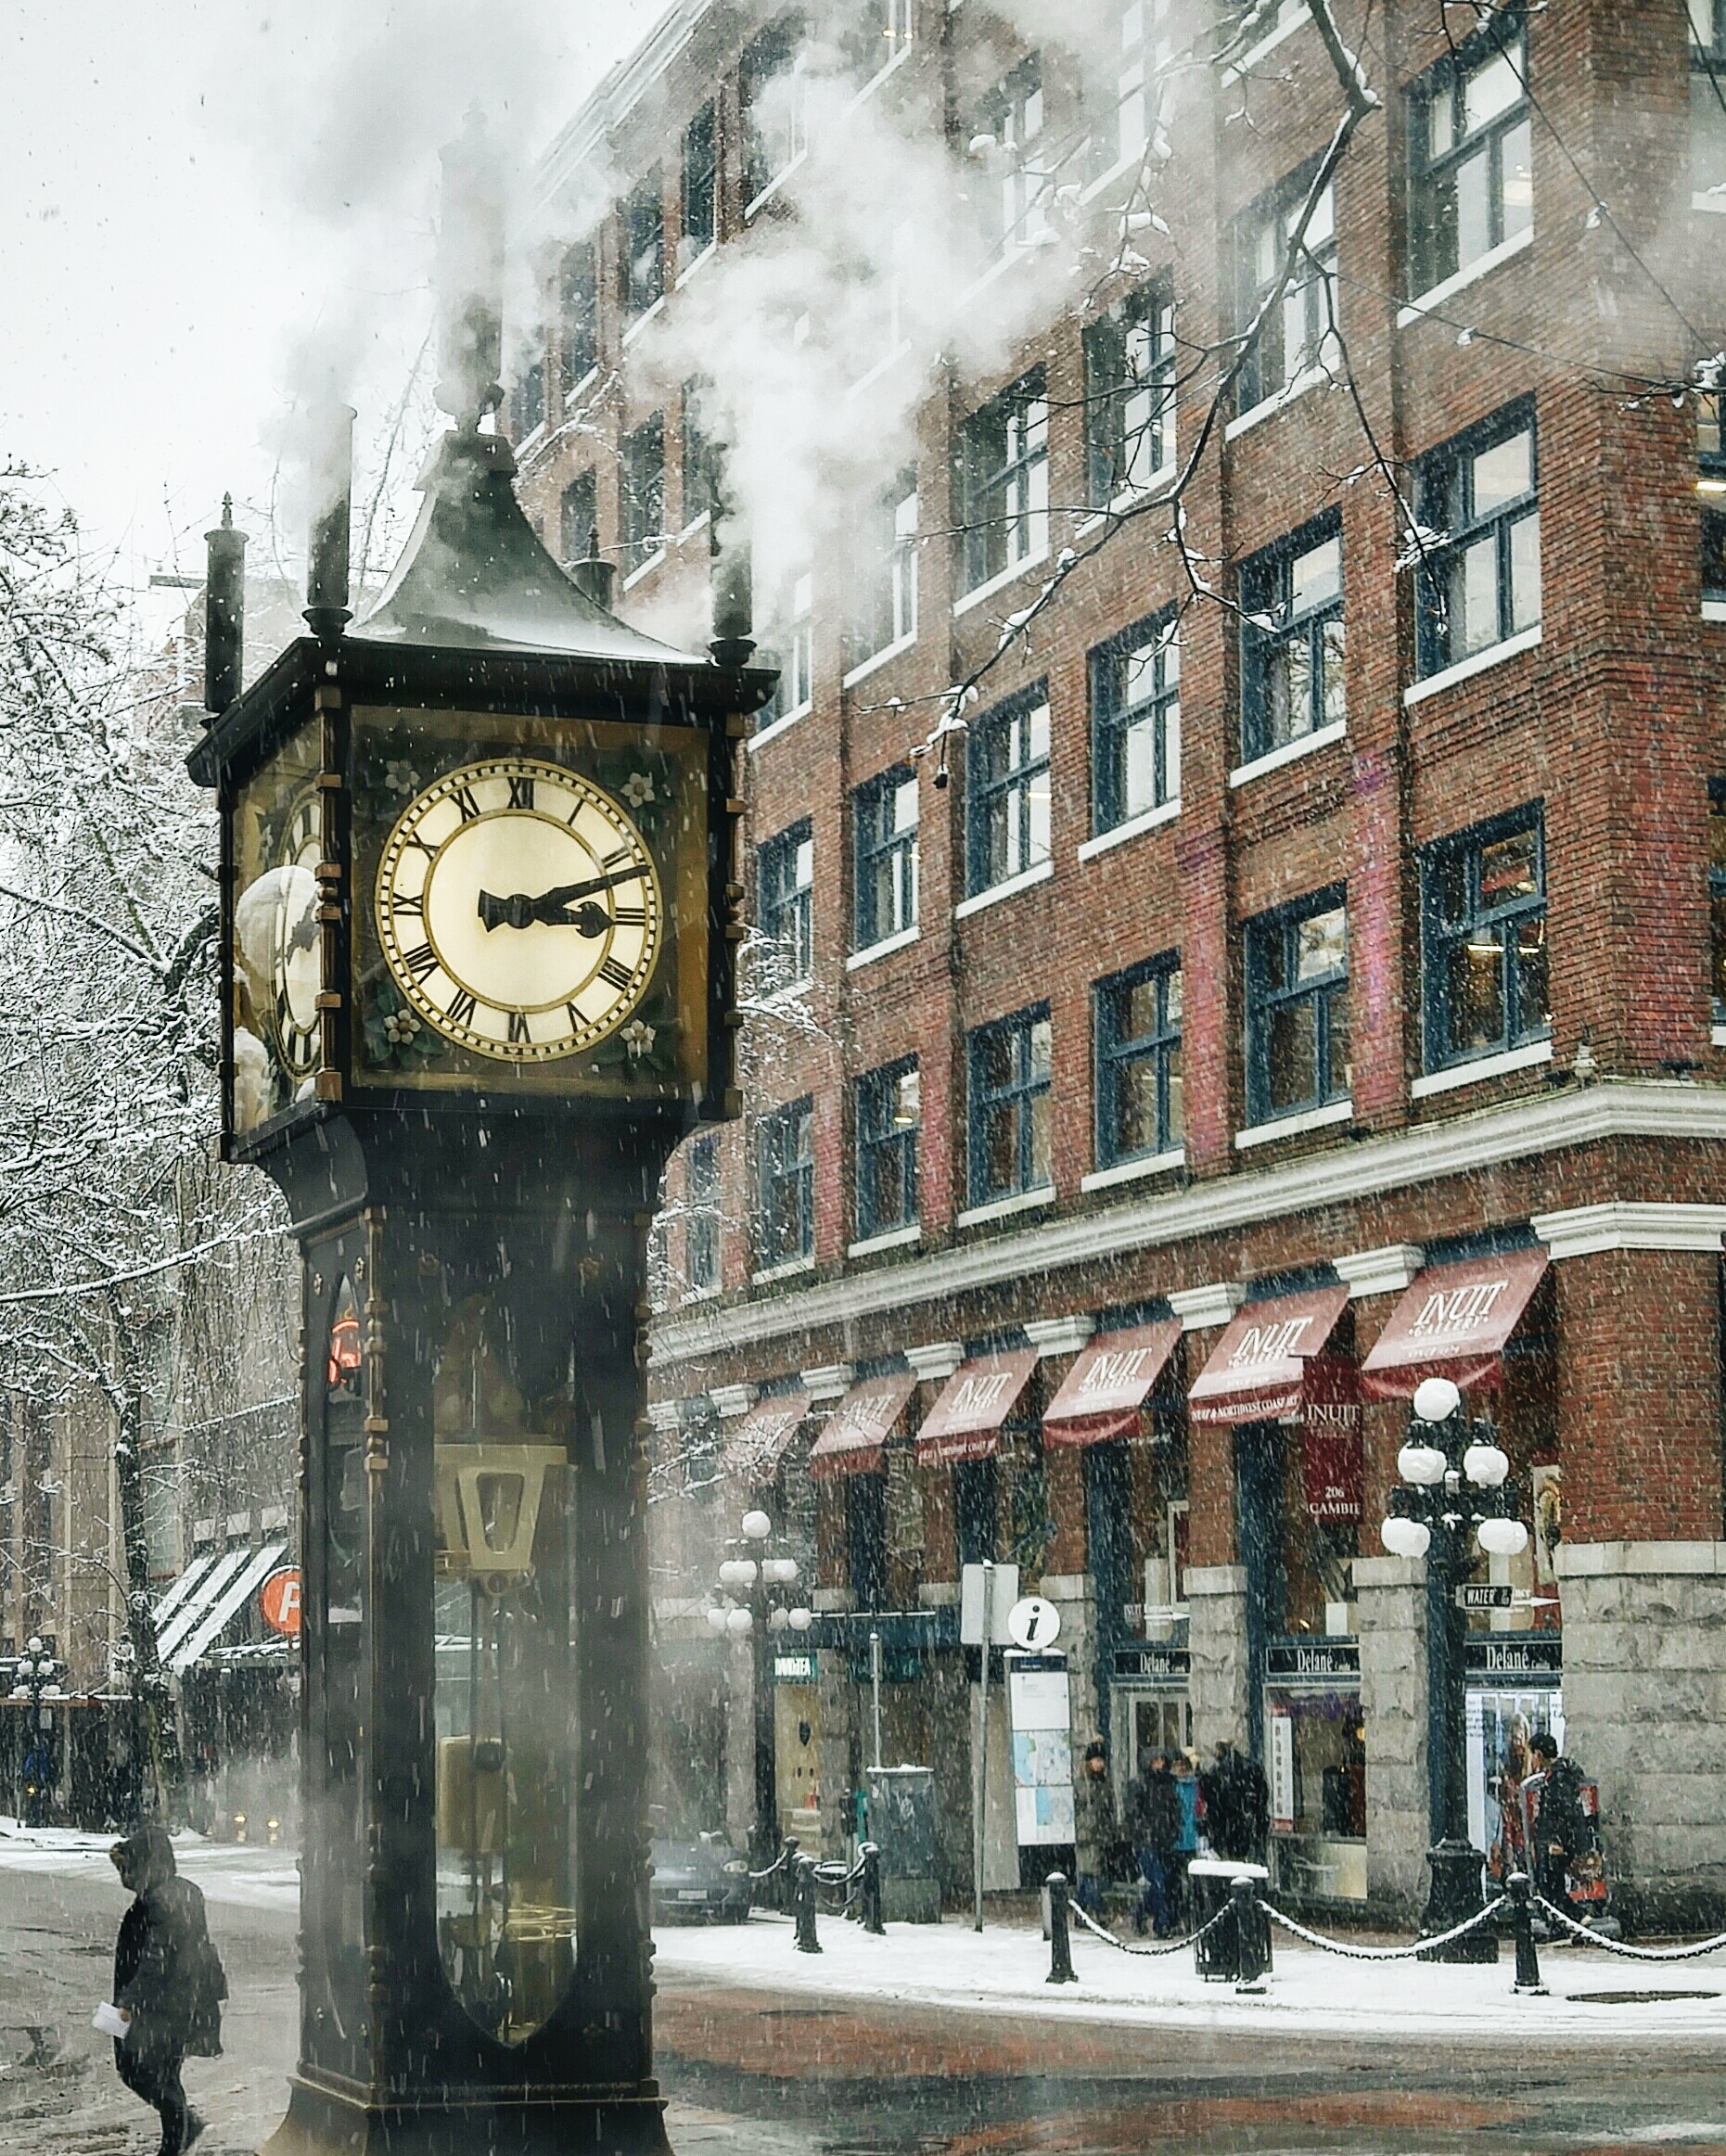 This old steam clock is one of Gastown's most memorable sights.